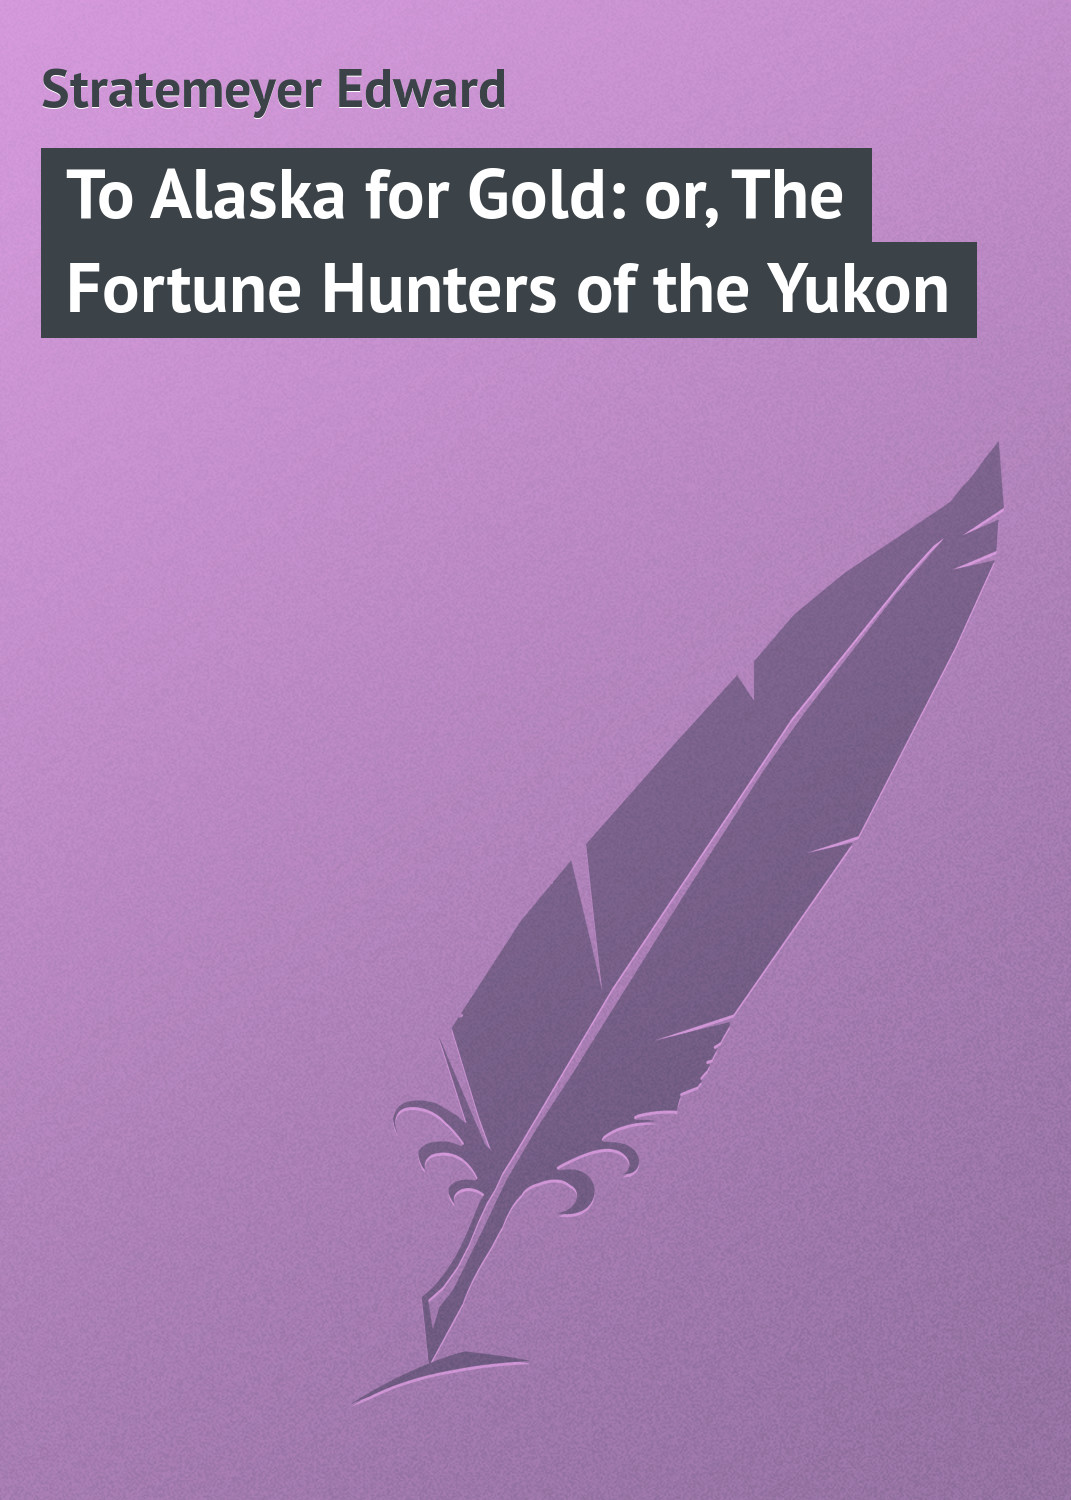 лучшая цена Stratemeyer Edward To Alaska for Gold: or, The Fortune Hunters of the Yukon